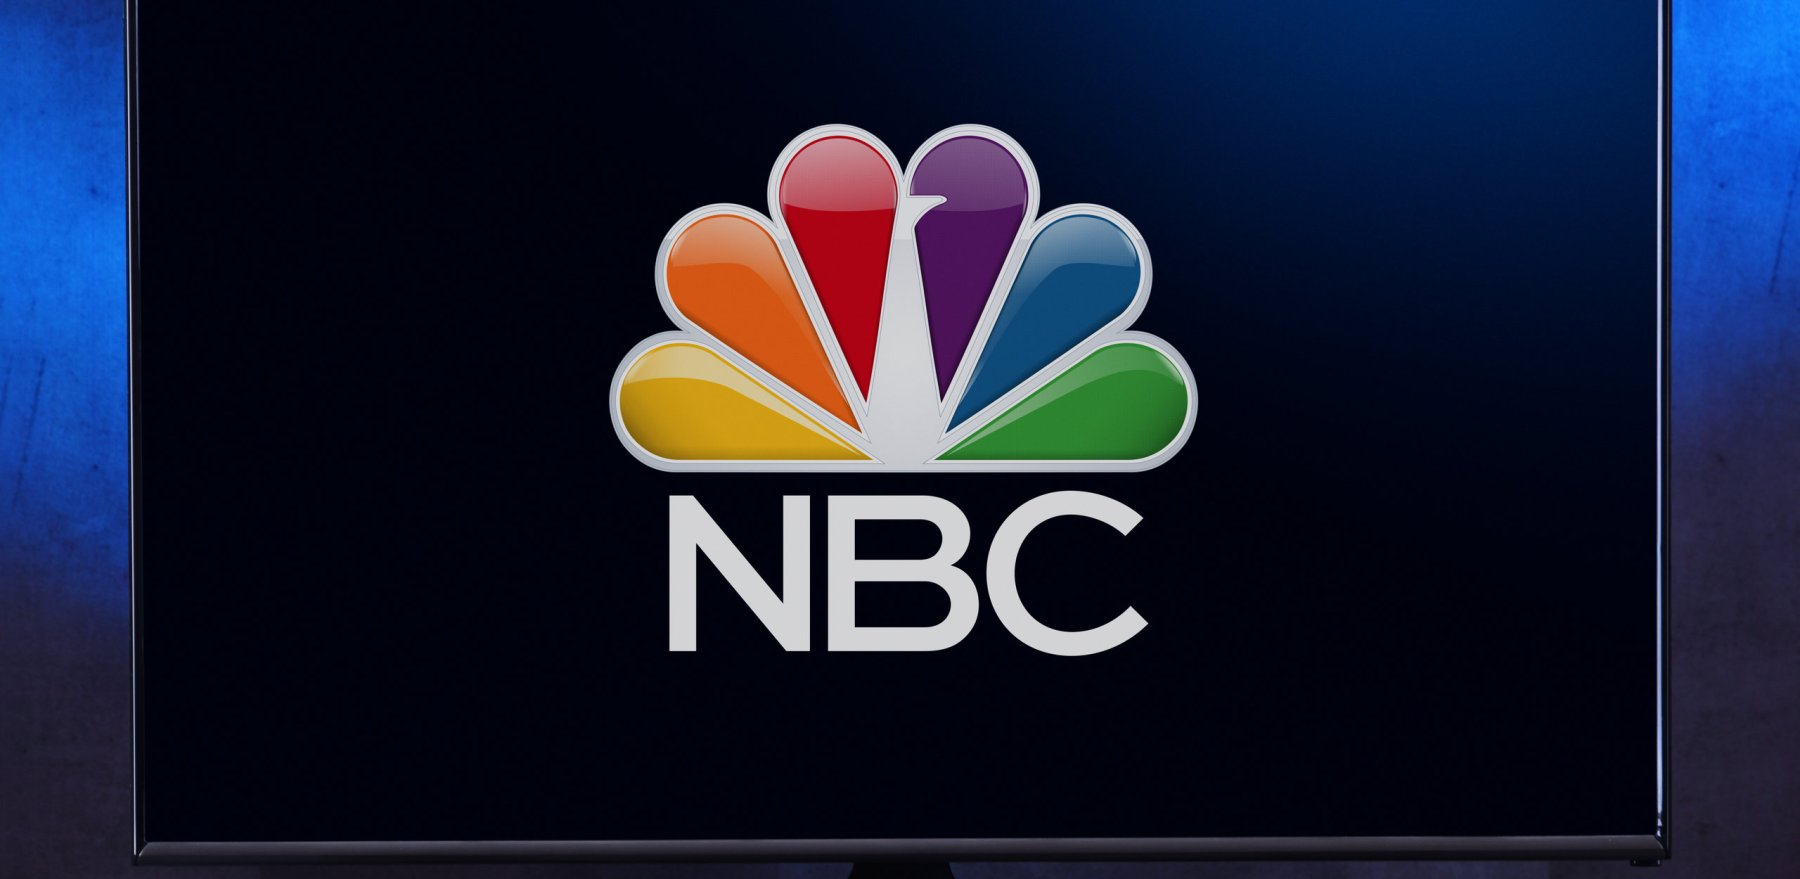 POZNAN, POL - FEB 04, 2020: Flat-screen TV set displaying logo of NBC, an American English-language commercial terrestrial radio and television network that is a flagship property of NBCUniversal